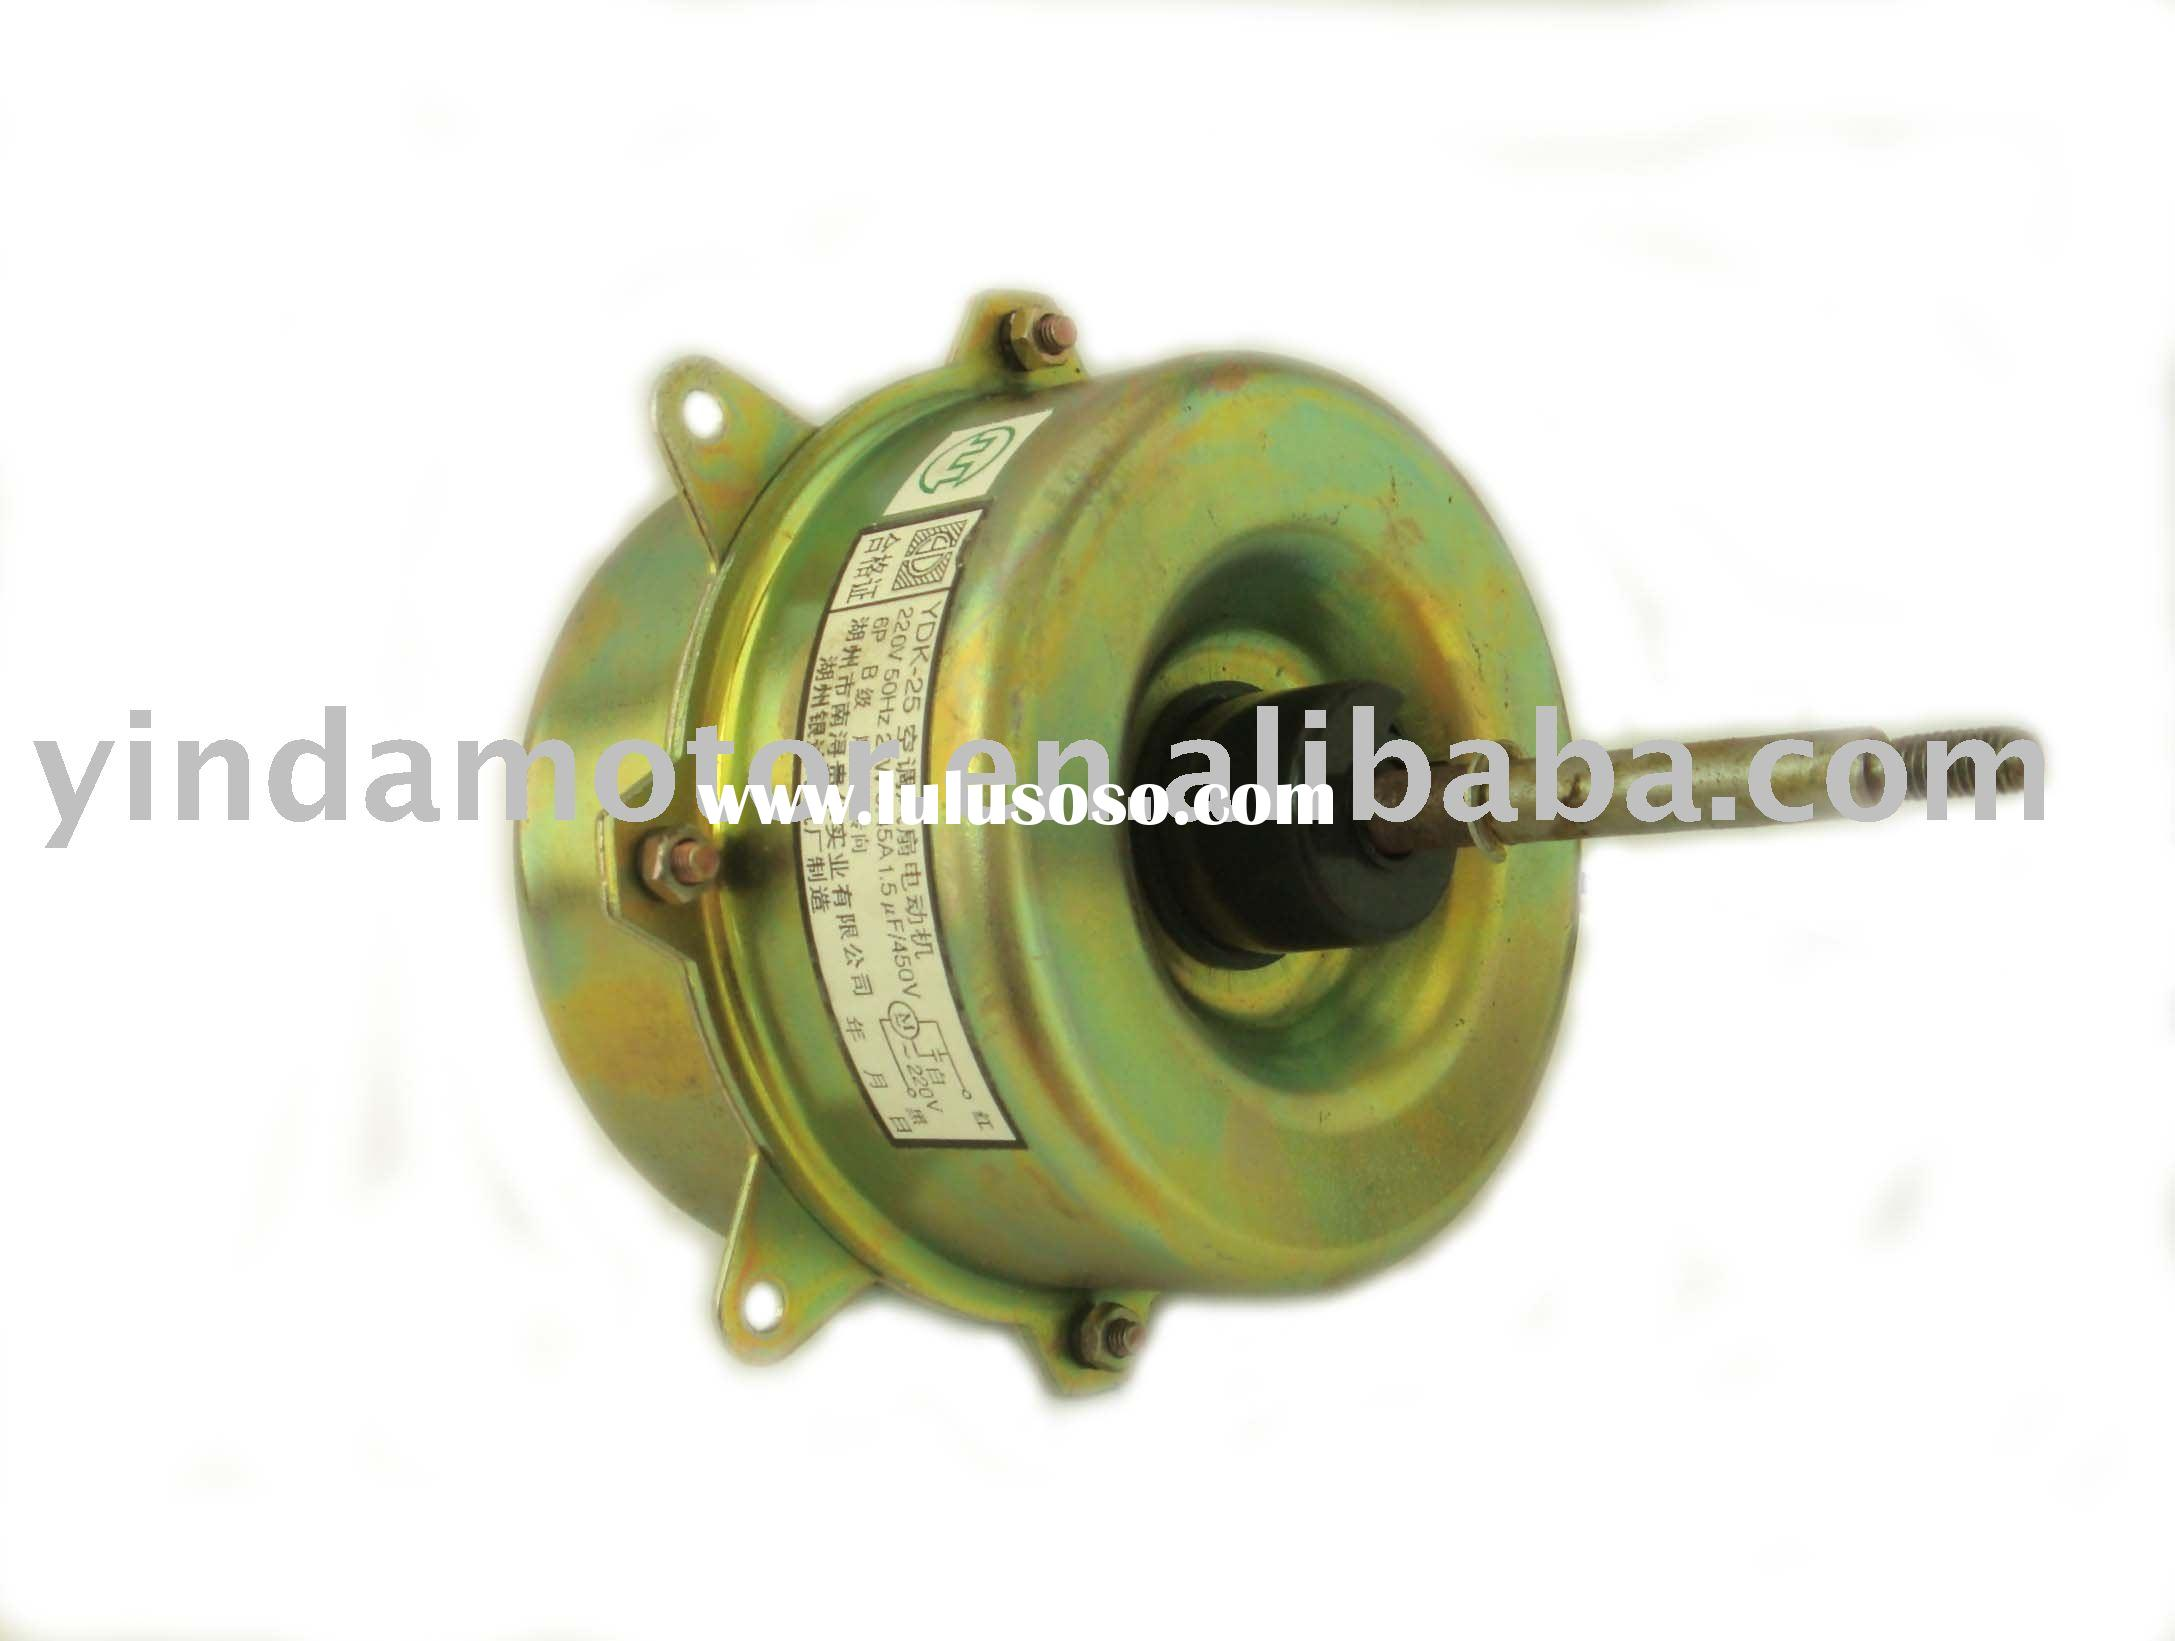 Air conditioning fan motor for sale price taiwan for Ac fan motor cost